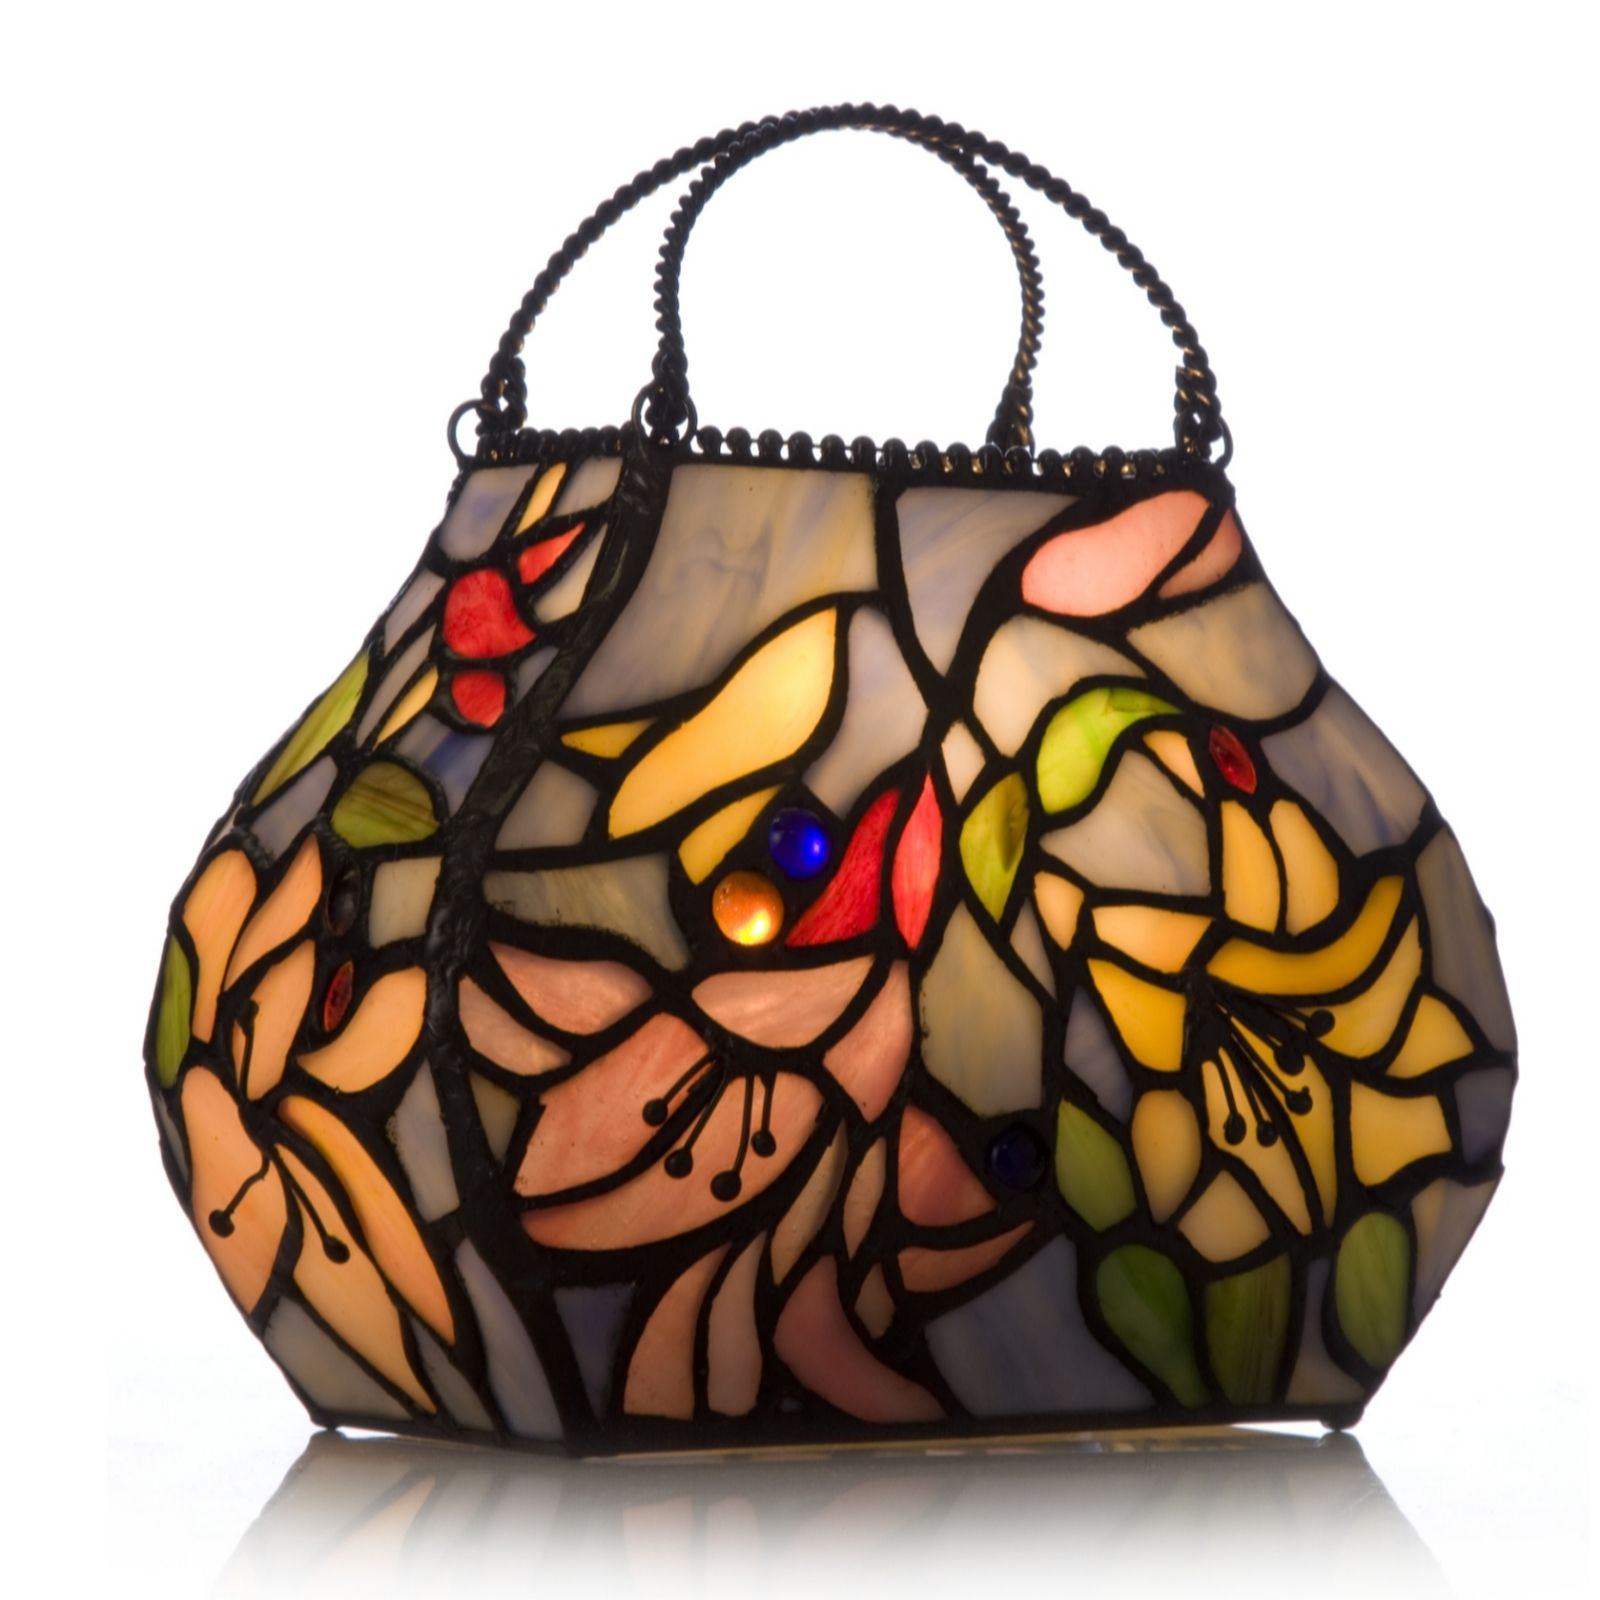 Tiffany Style Handcrafted Lily Handbag Novelty Lamp   QVC UK